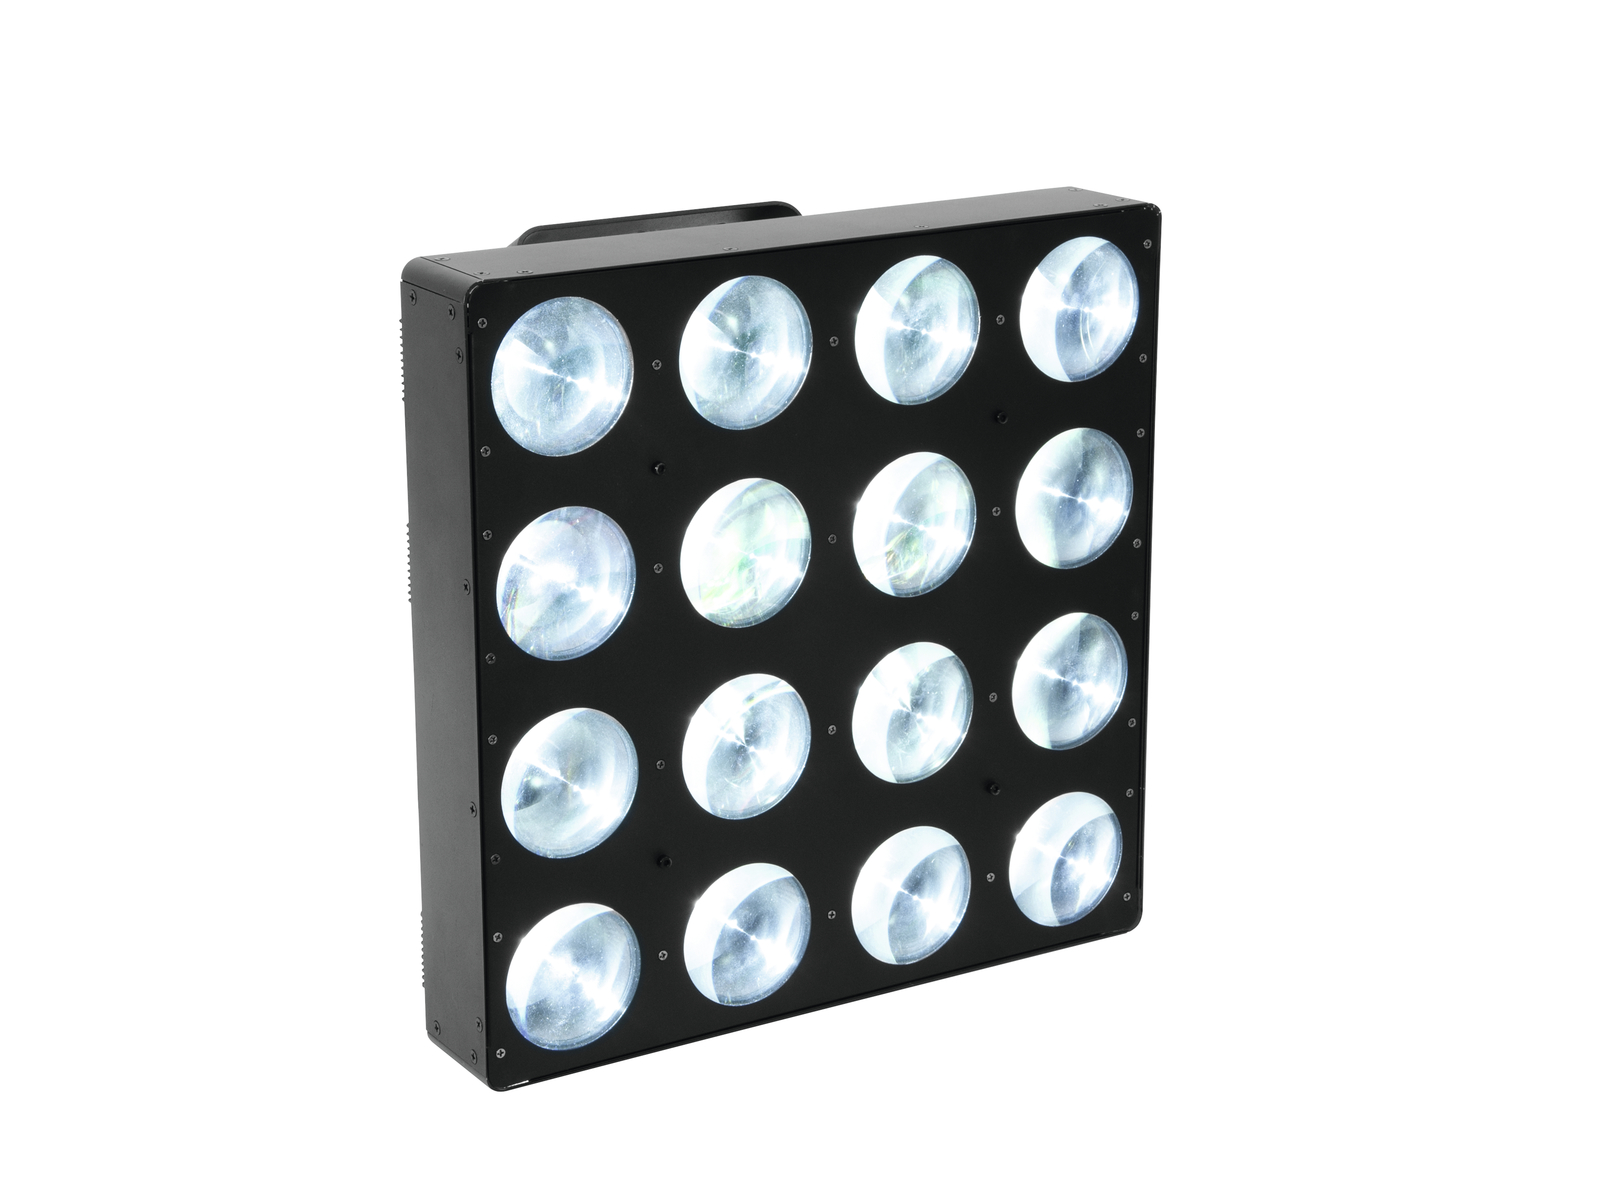 EUROLITE LED BP-Pannello 16 luci LED con matrice 4 x 4 e 7 W